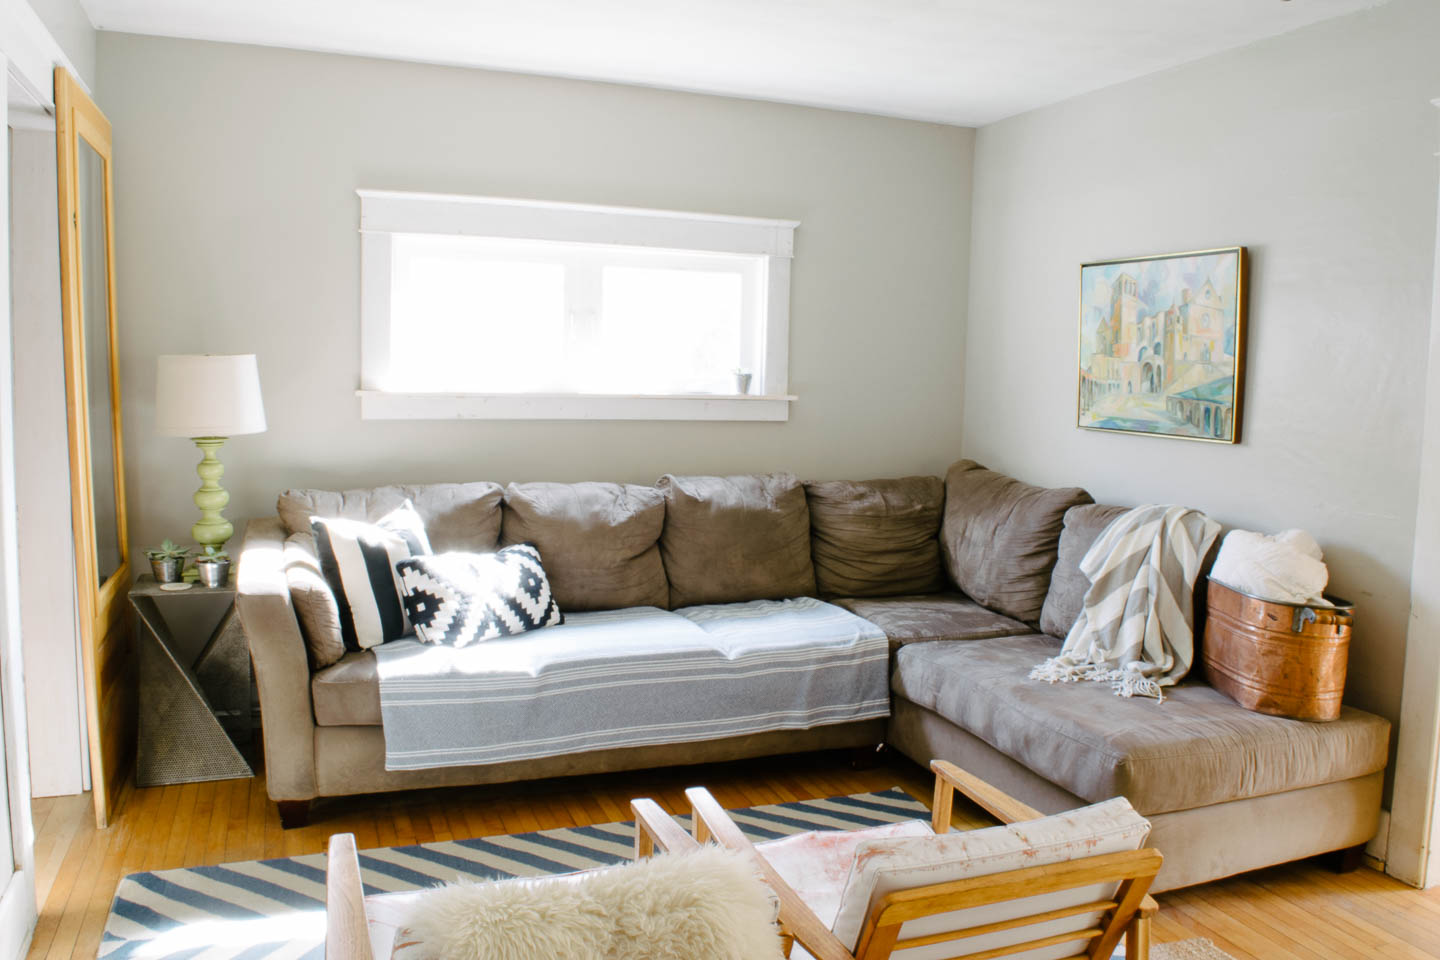 living room photo of couch